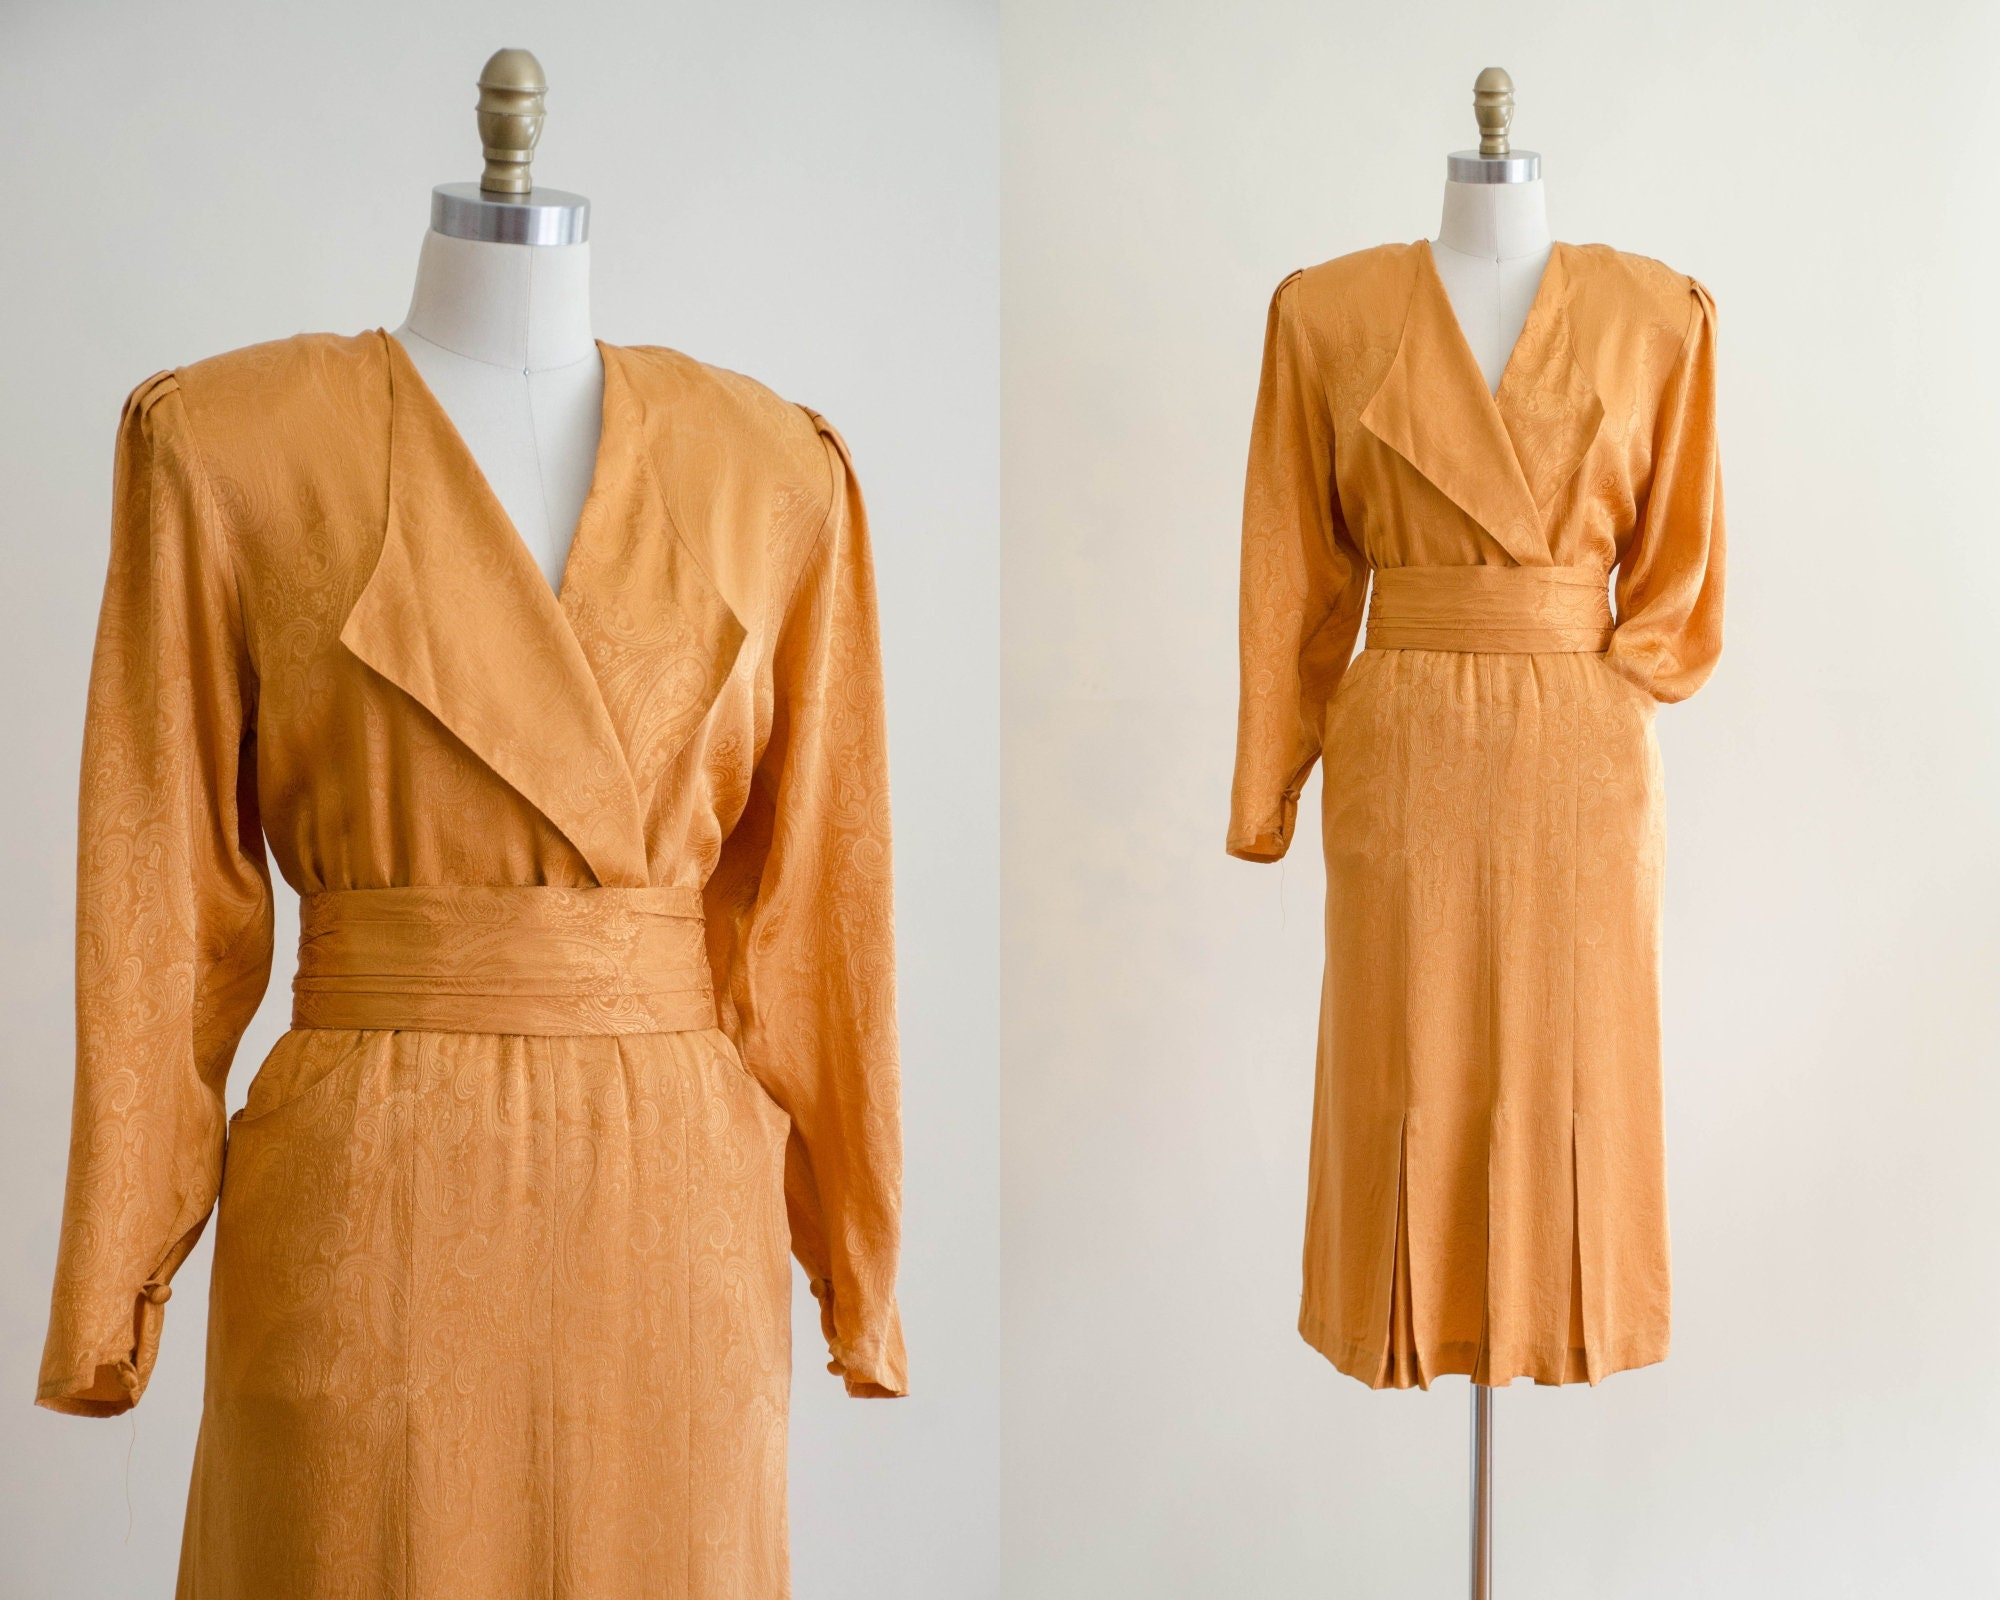 80s Dresses | Casual to Party Dresses 1980S Dress  Mustard Yellow Silk Womens Vintage Clothing $25.00 AT vintagedancer.com